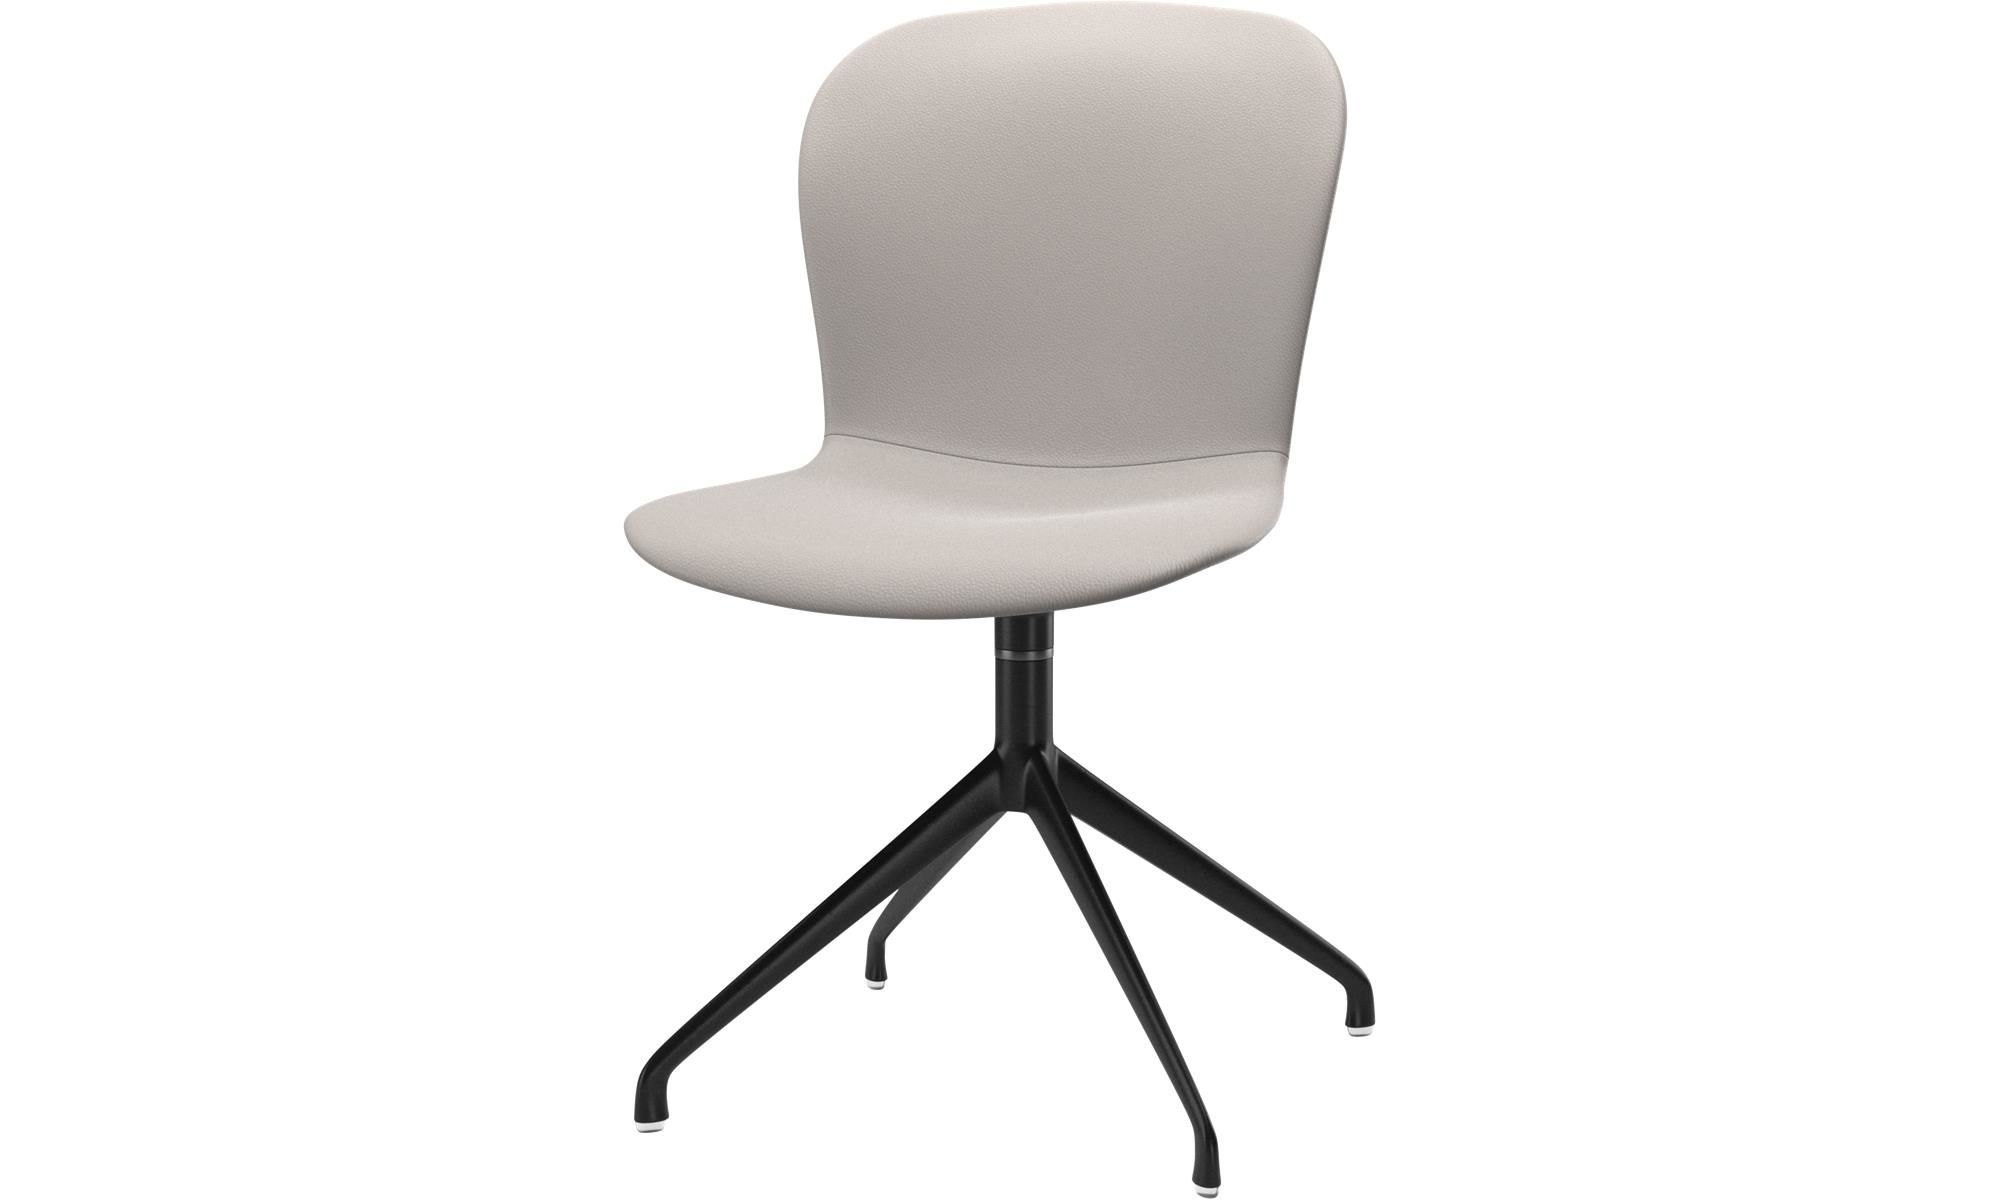 Dining Chairs Adelaide Chair With Swivel Function Beige